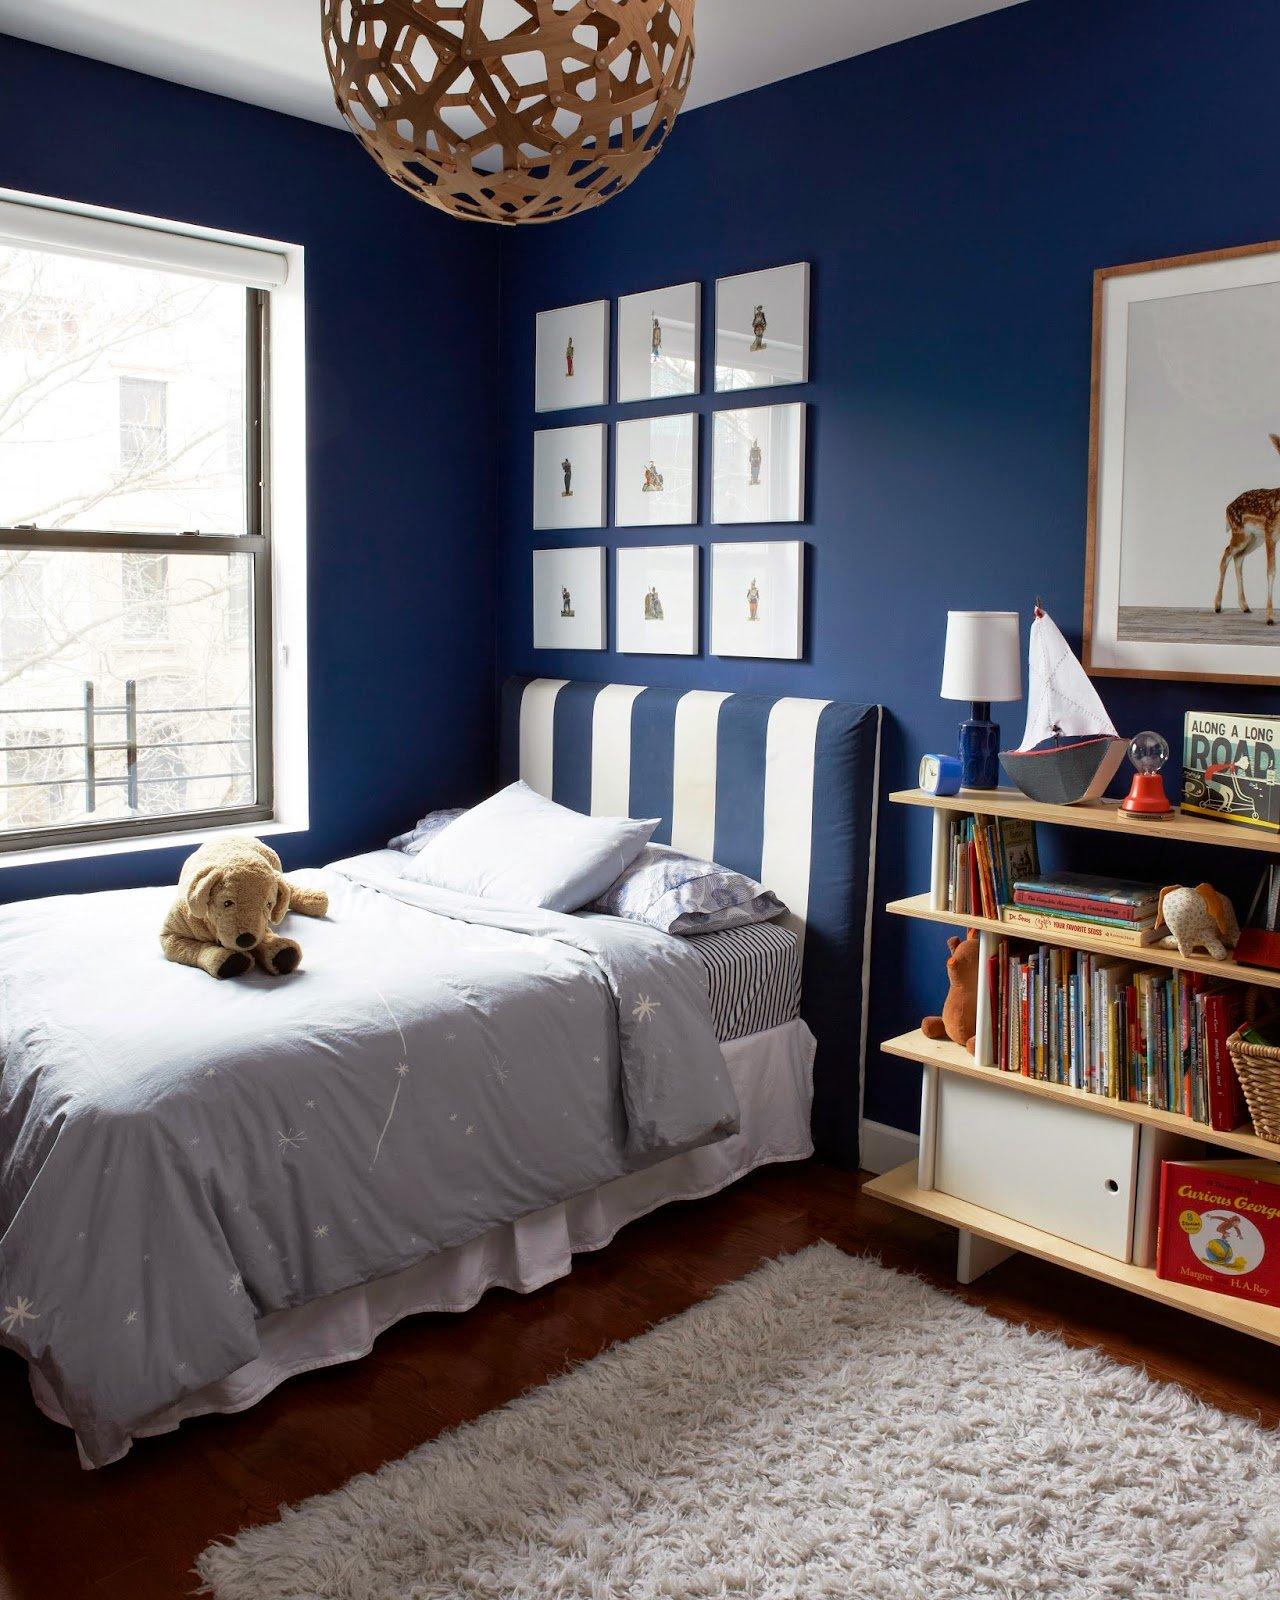 Bedroom Paint: Help! Which Bedroom Paint Color Would You Choose?